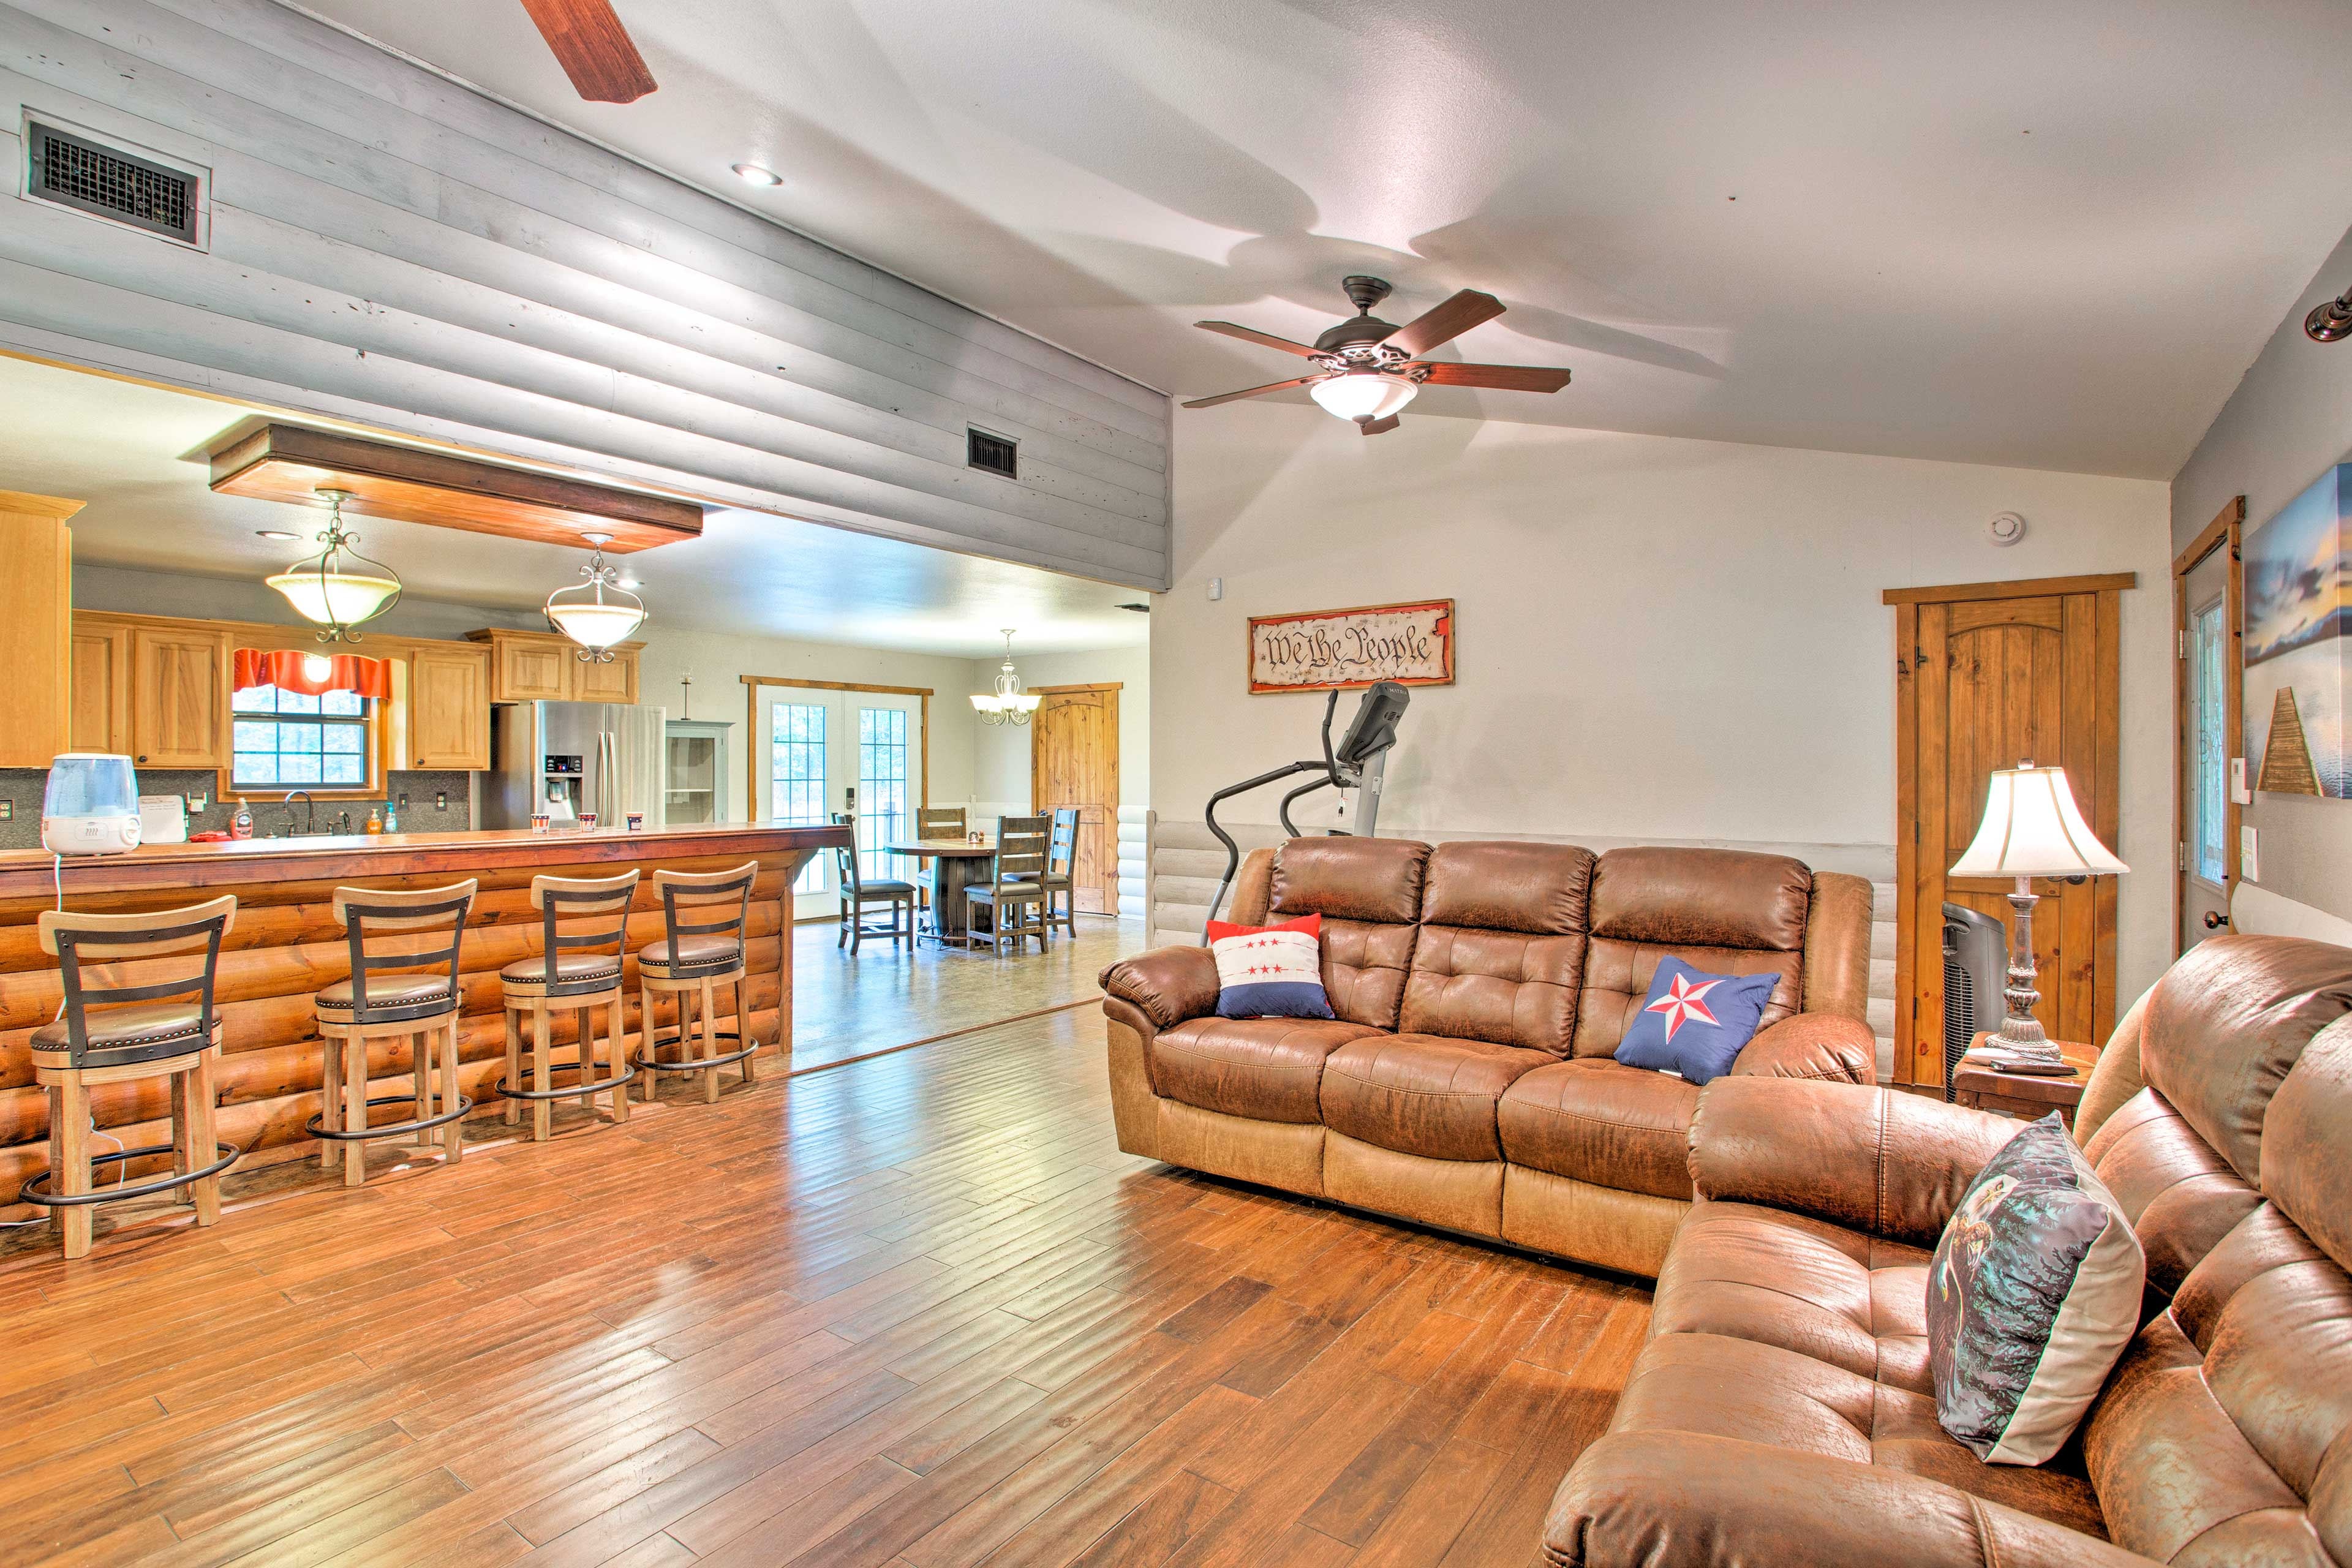 There's plenty of seating for everyone with 2 couches & a bar for 4.